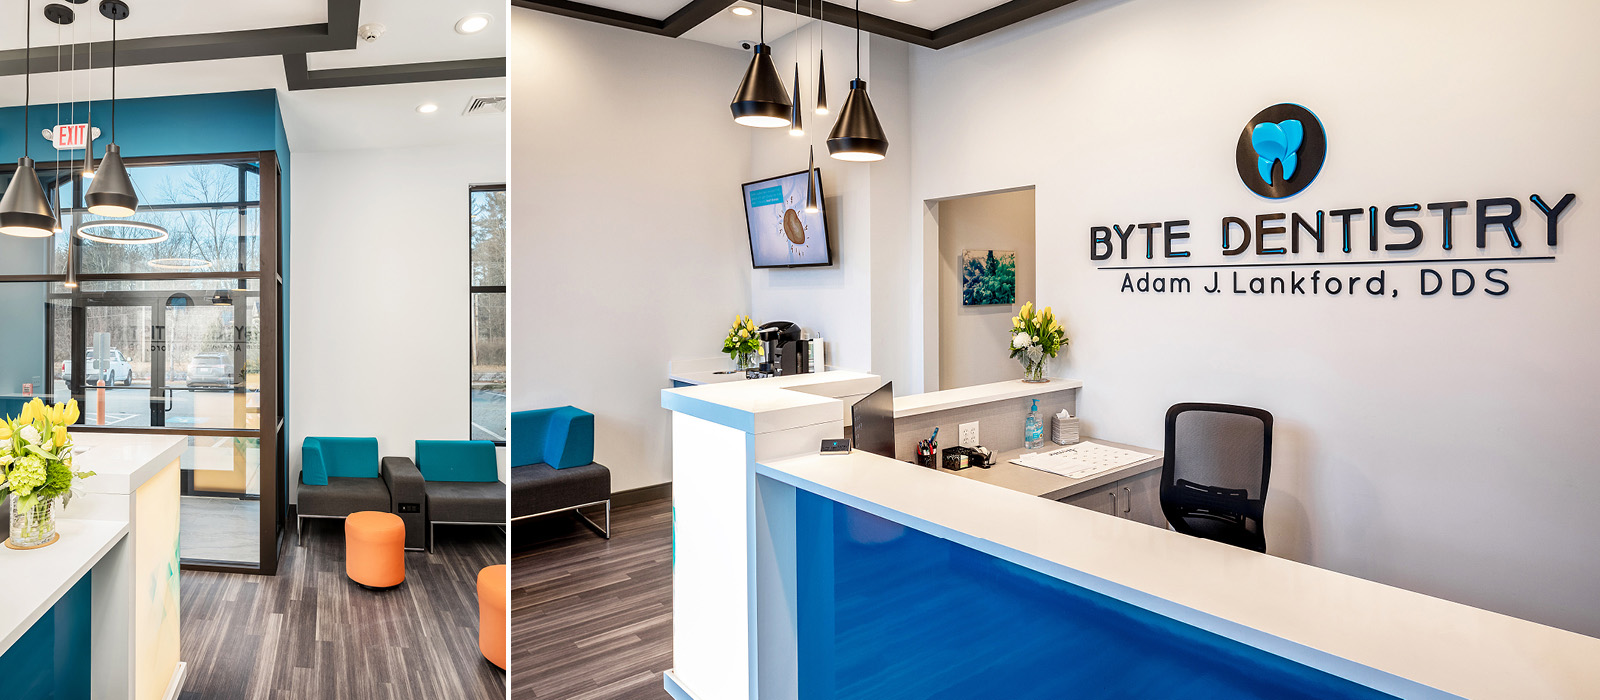 Byte Dentistry reception area and waiting room